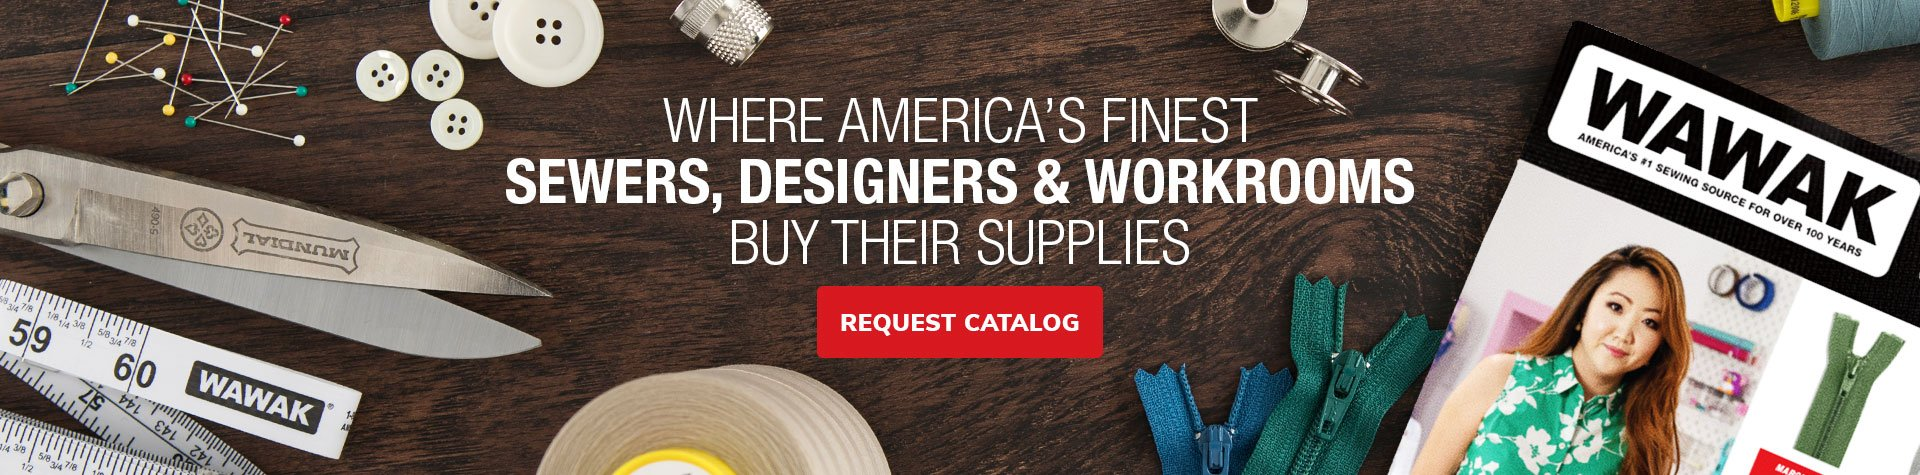 Where America's Finest Sewers, Designers & Workrooms Buy Their Supplies. Request A Catalog.